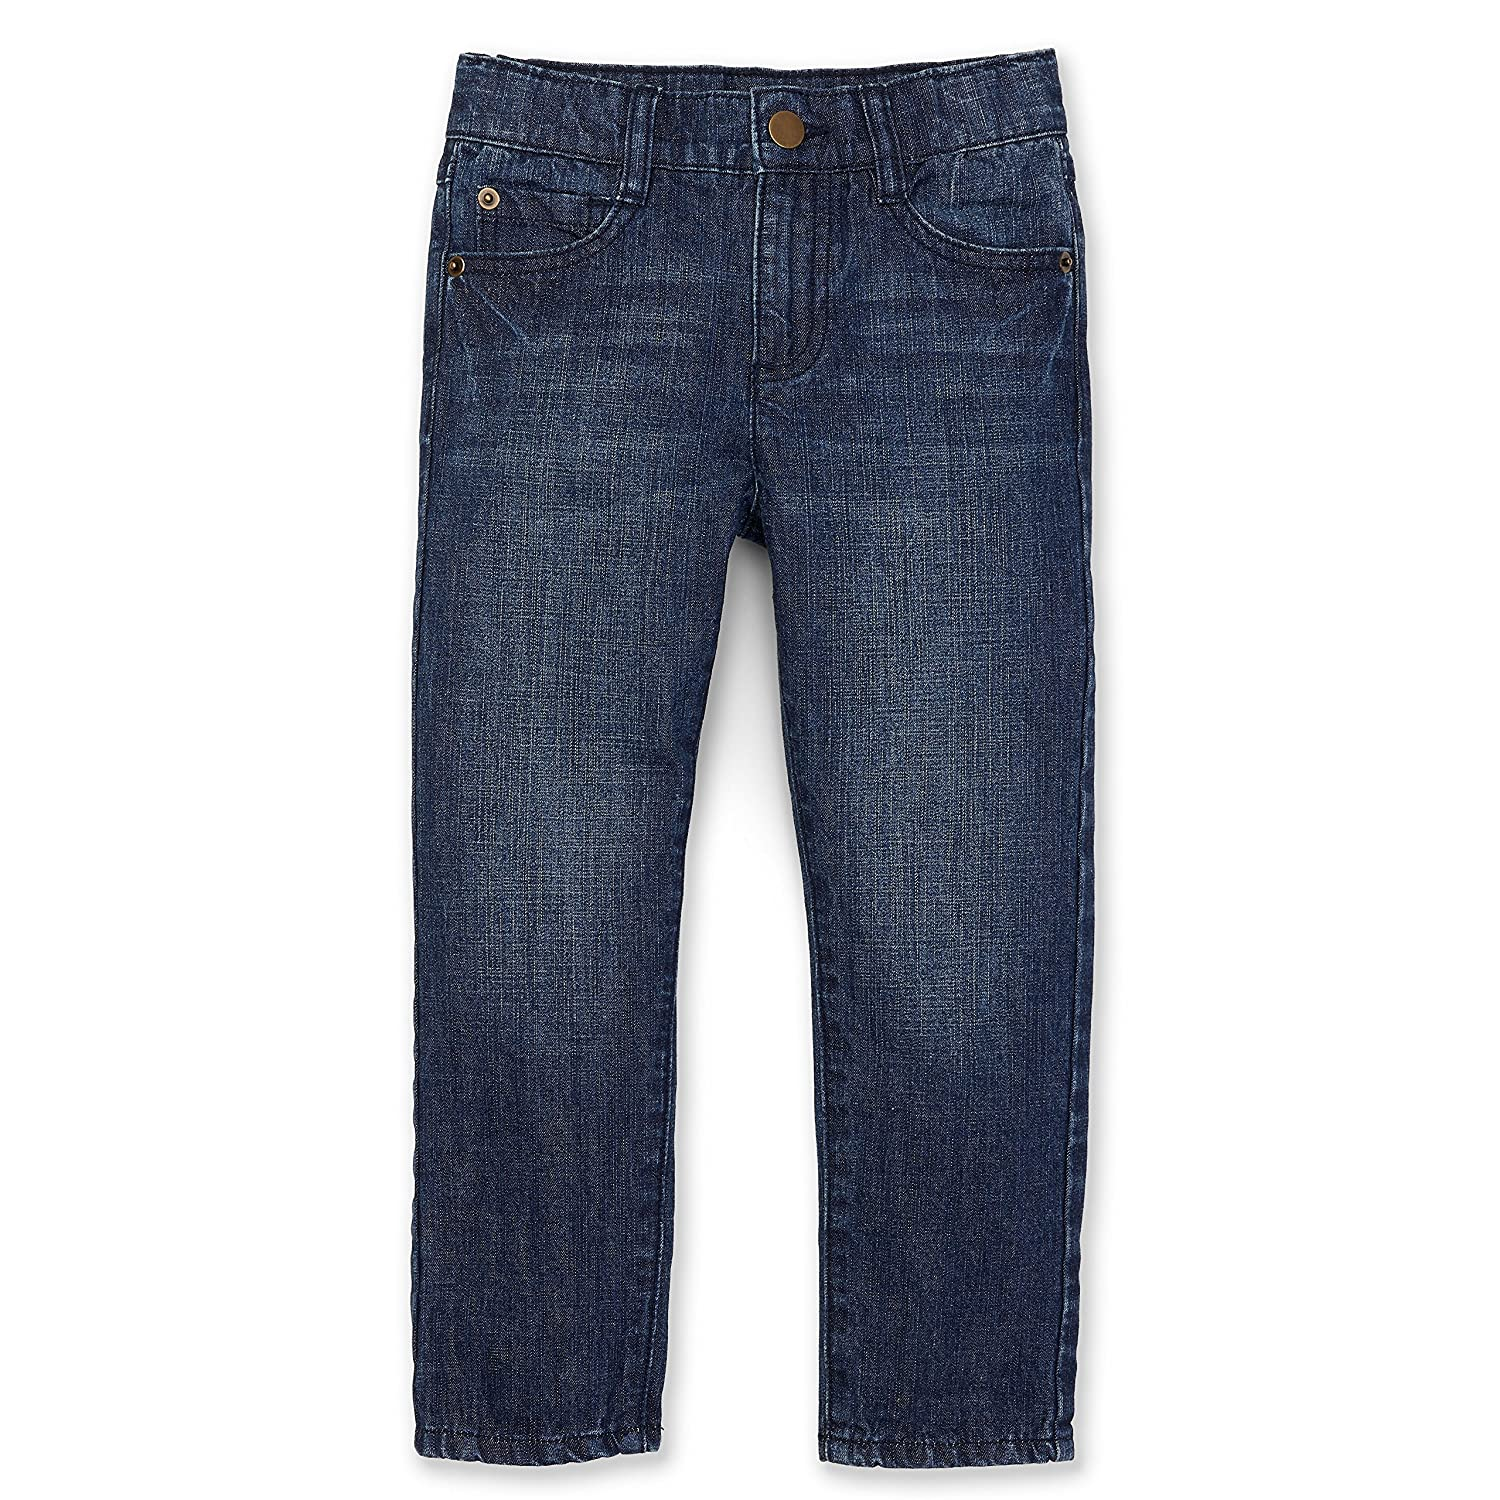 Hope & Henry Boys' Lightweight Denim Jeans Made with Organic Cotton